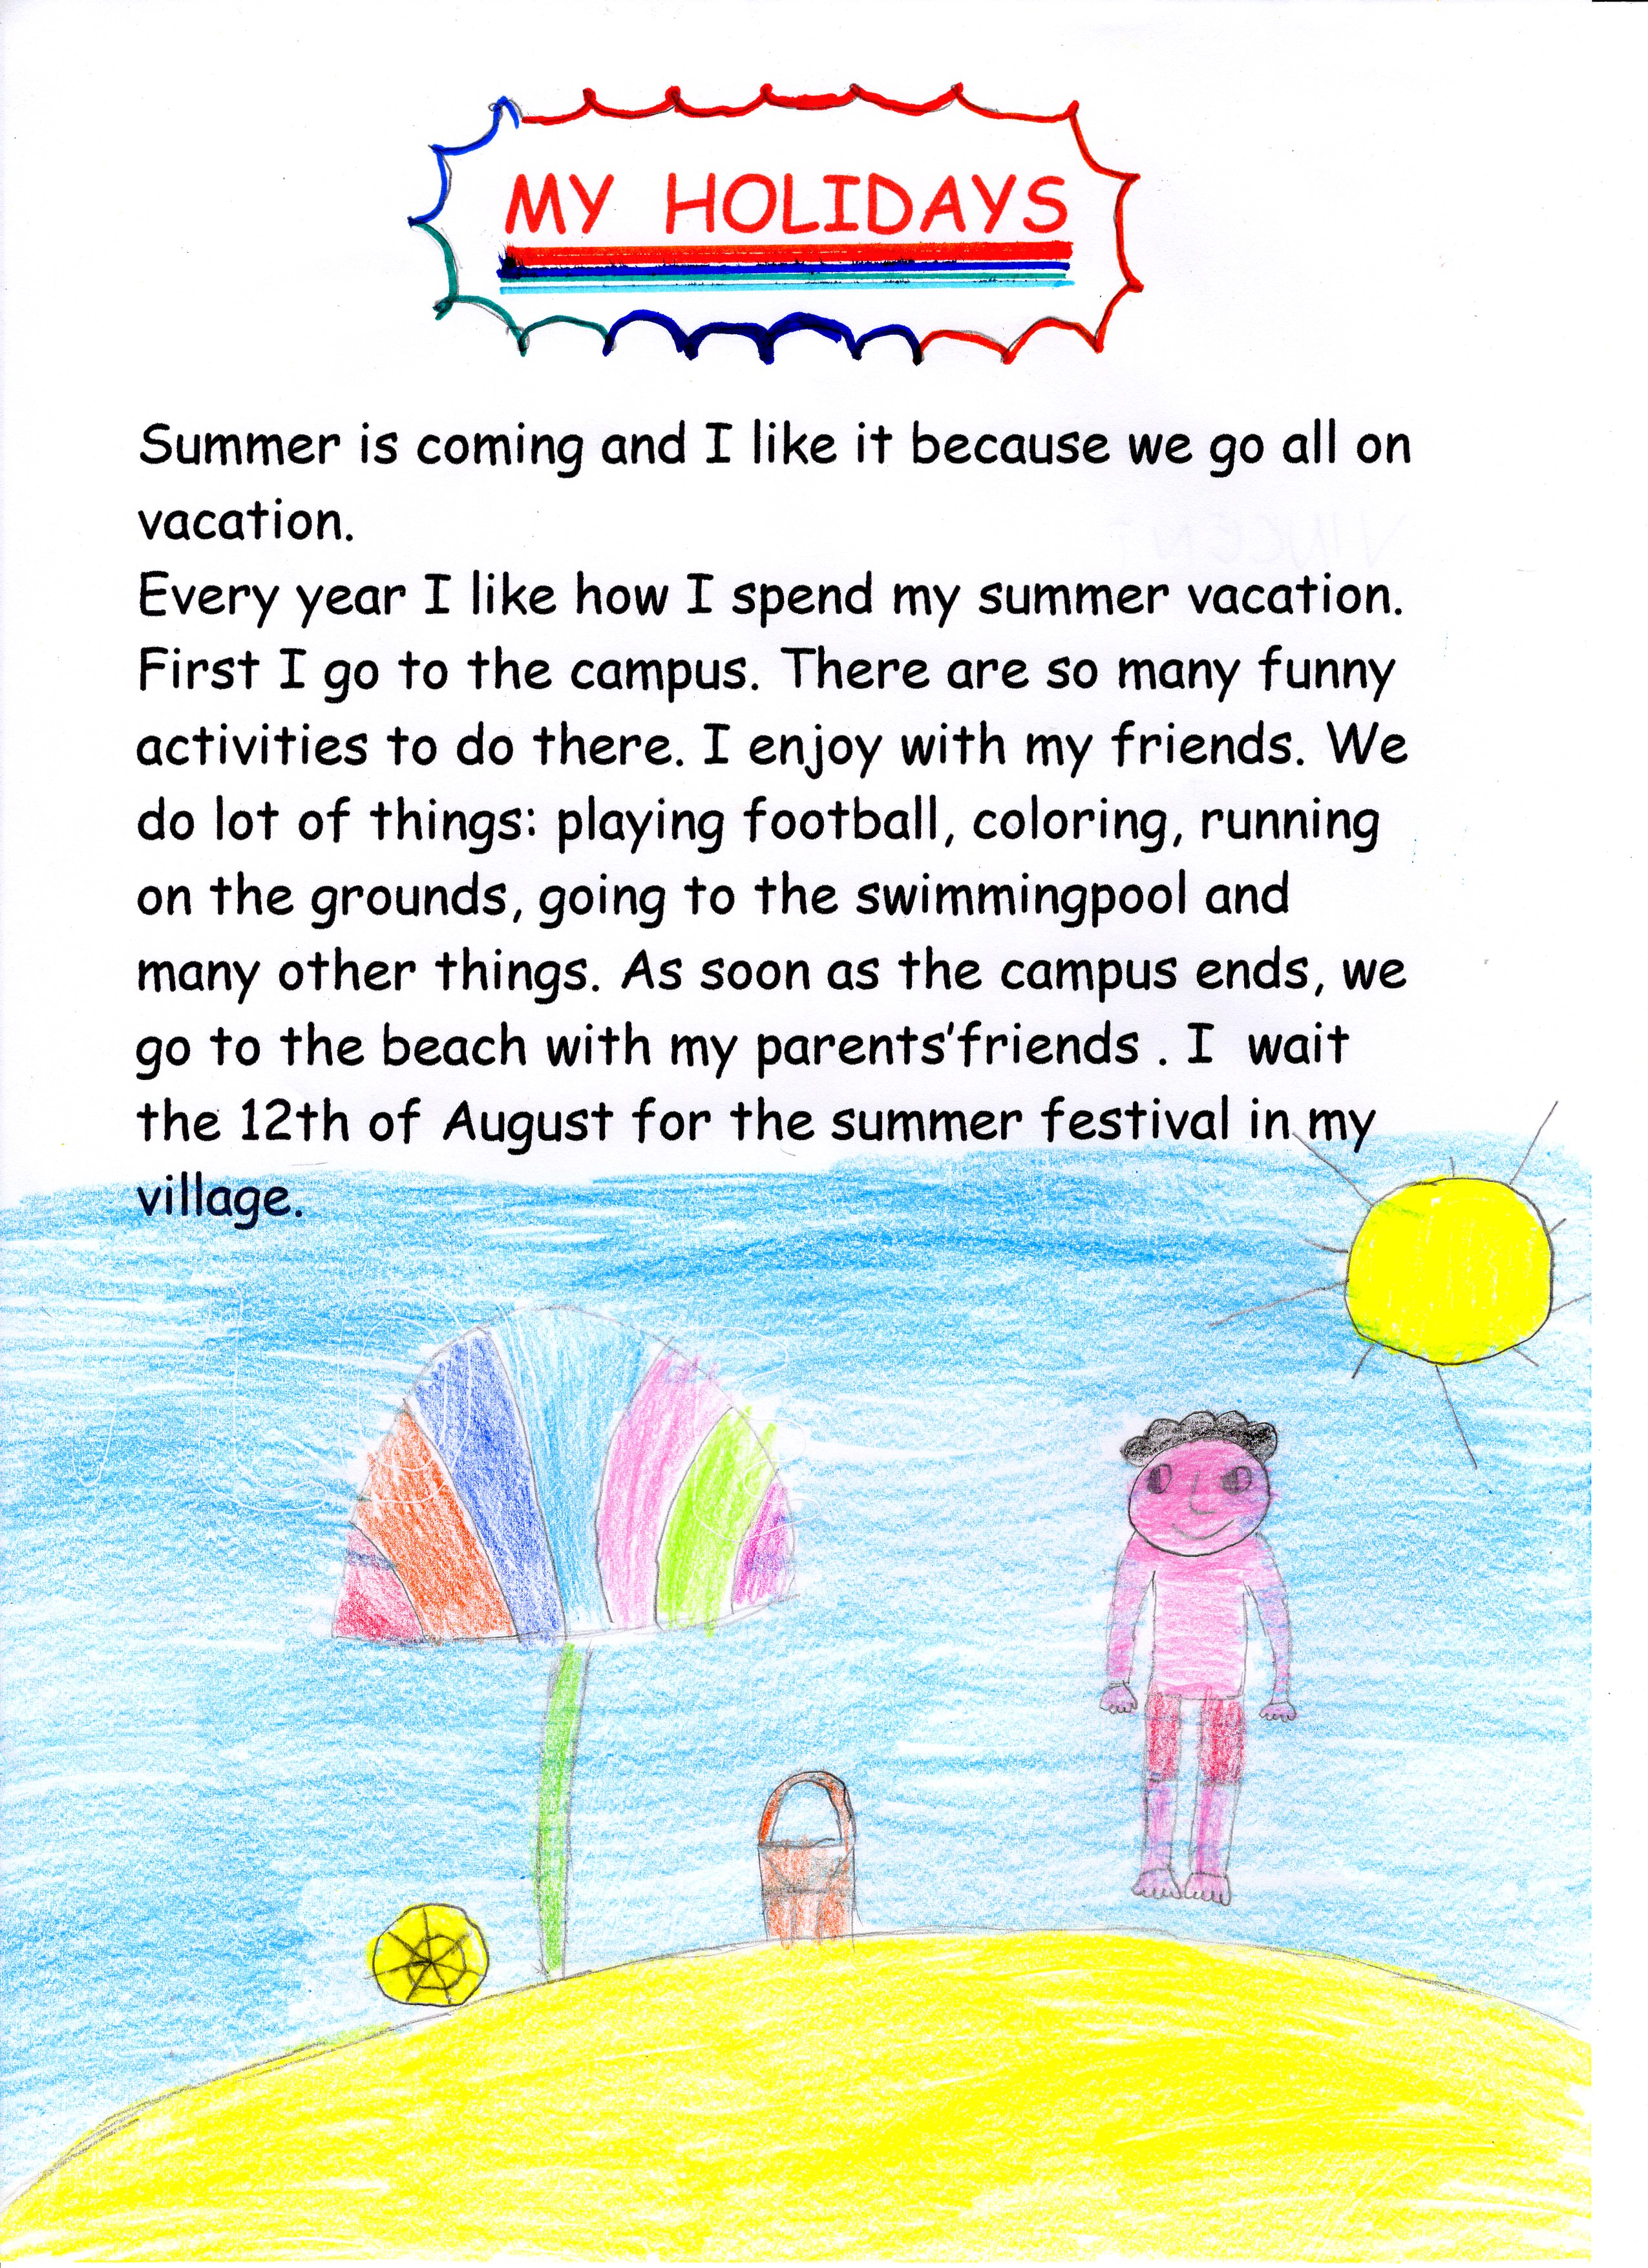 Artwork from the book - SUMMER HOLIDAYS by gina tullo - Illustrated by TEACHERS: Tullo Gina - Marinelli Maria Concetta - Ourboox.com